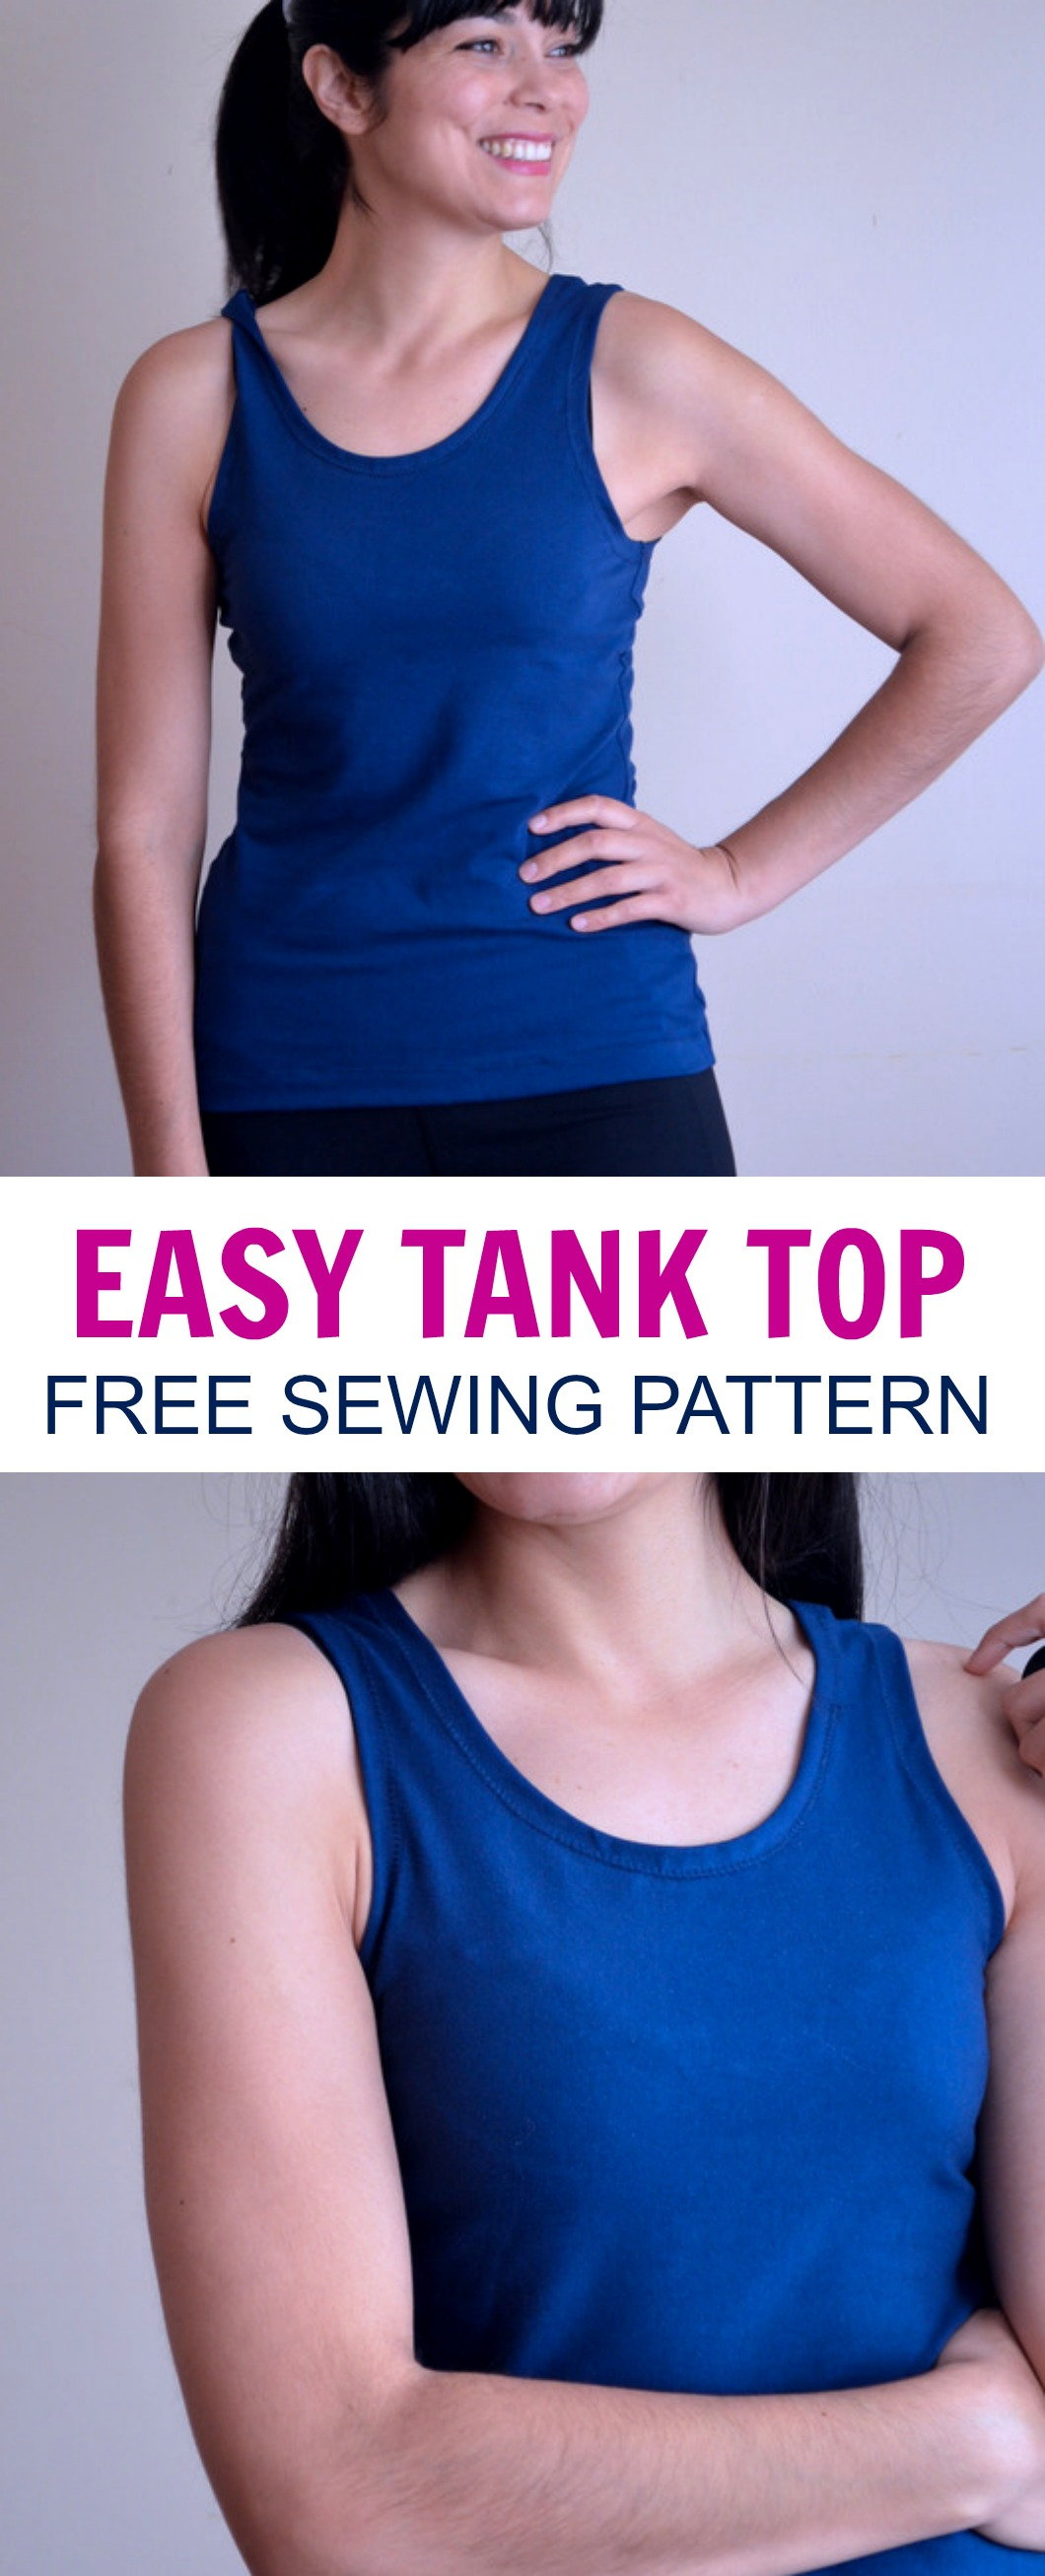 15 Free Sewing Projects To Make In Less Than An Hour